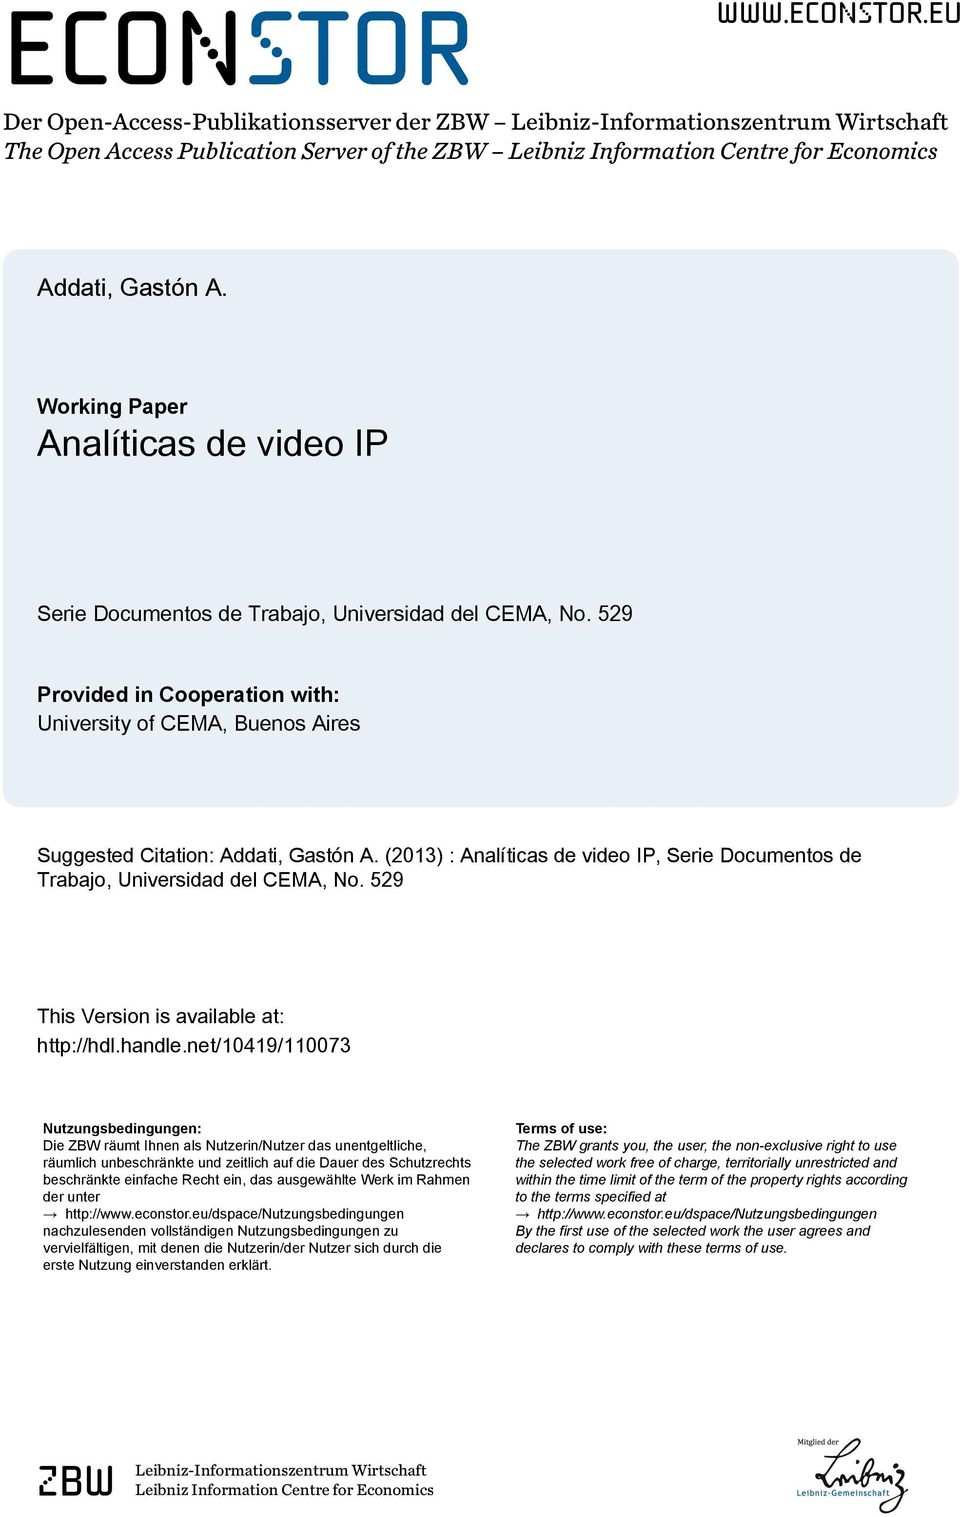 (2013) : Analíticas de video IP, Serie Documentos de Trabajo, Universidad del CEMA, No. 529 This Version is available at: http://hdl.handle.